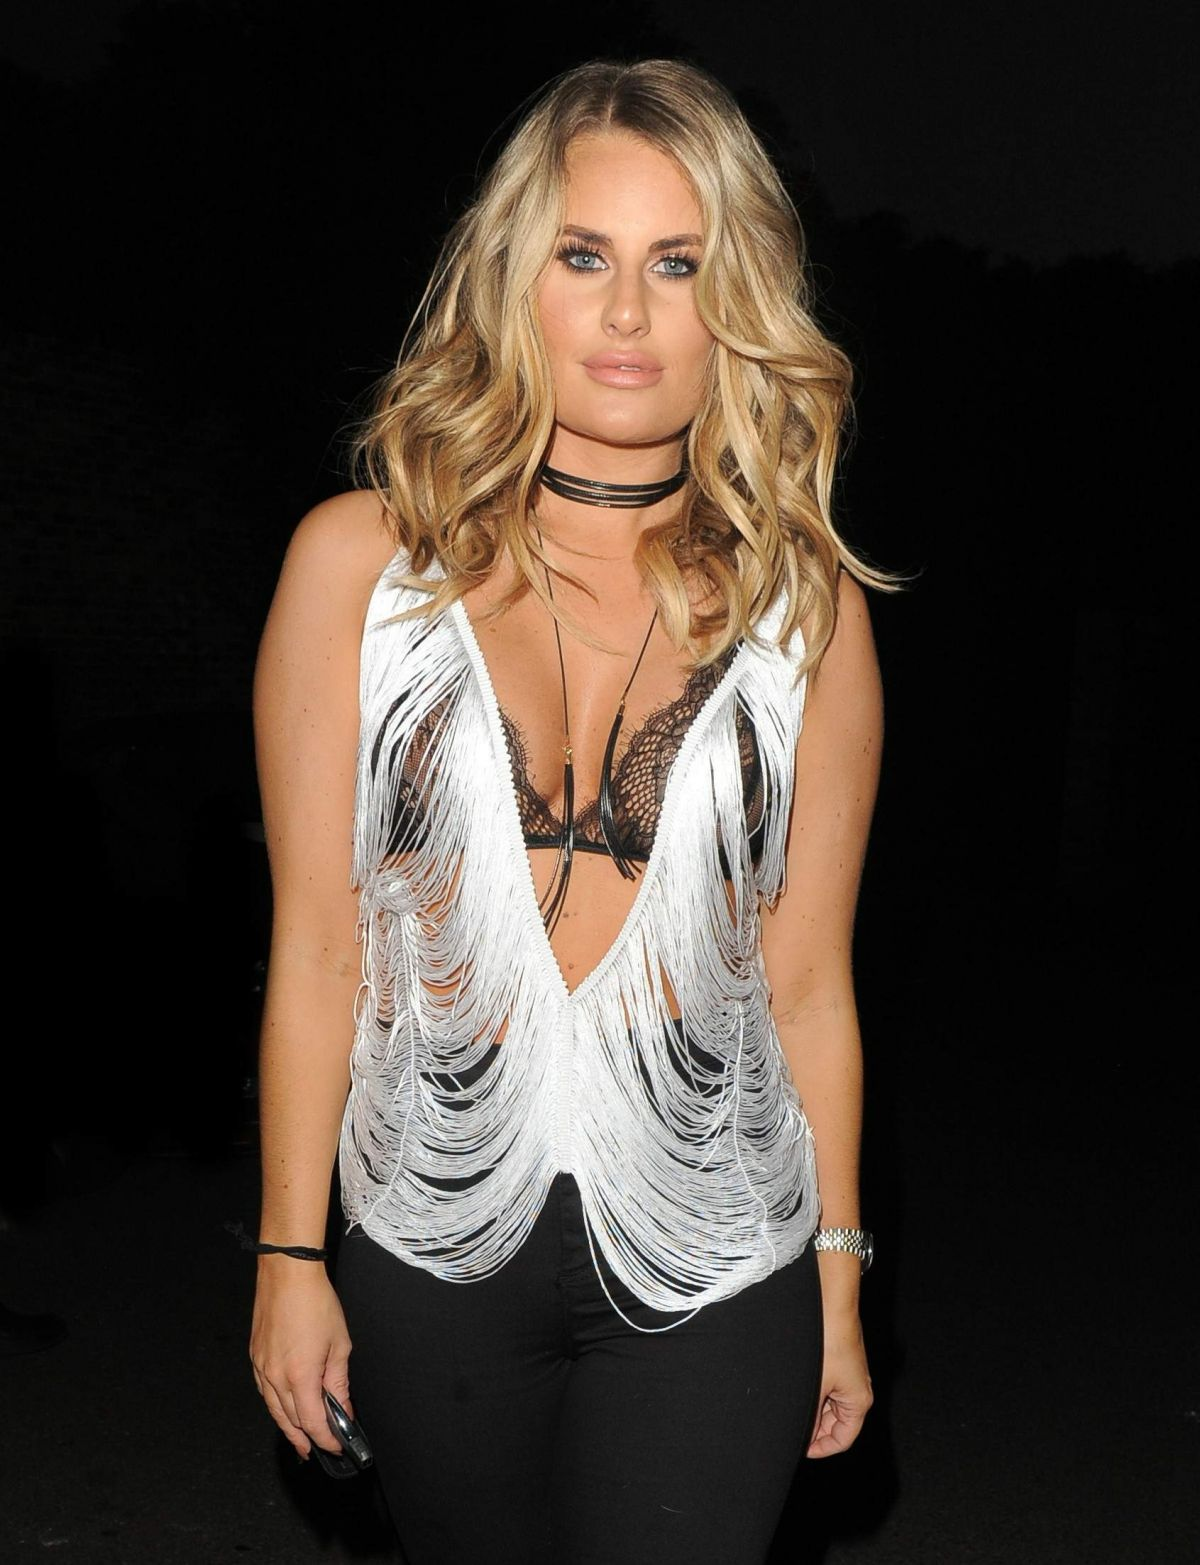 DANIELLE ARMSTRONG at Sheesh Restaurant in Essex 09/14/2016